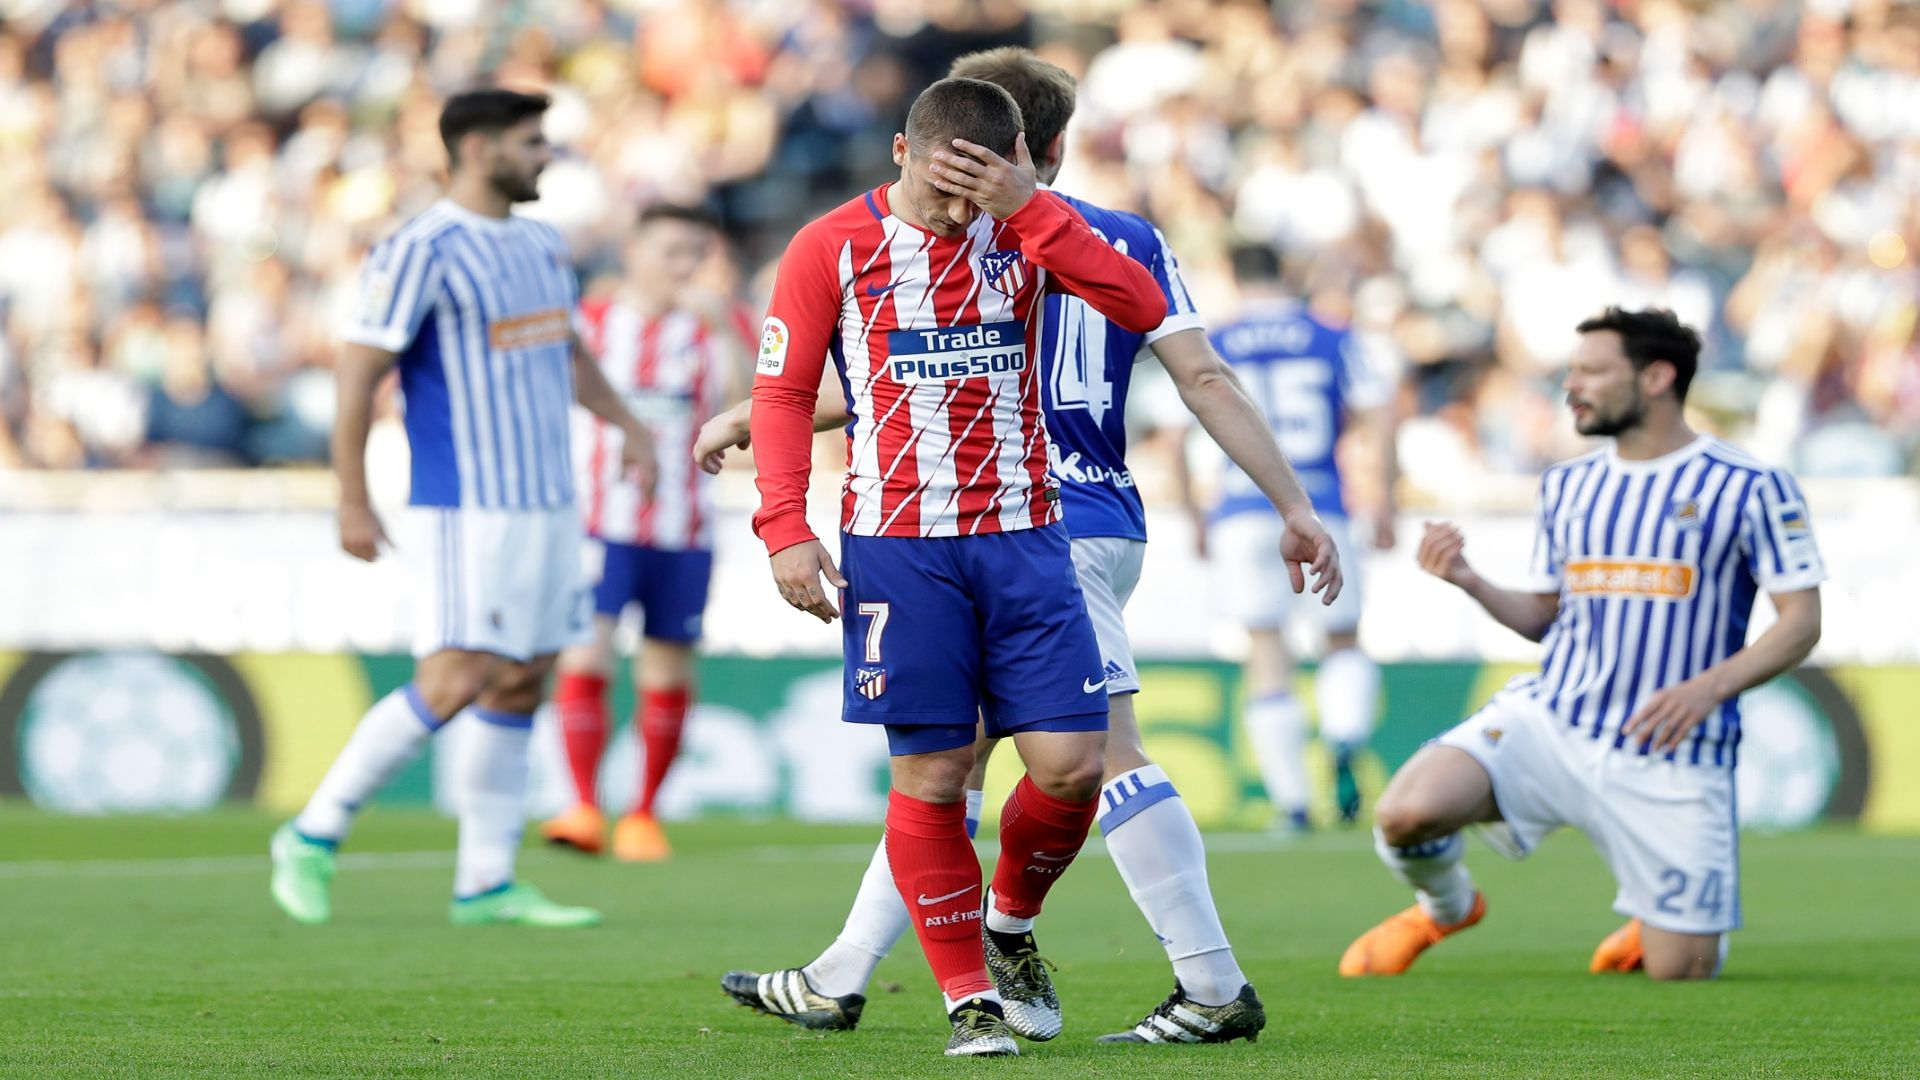 Atleti's Costa can intimidate Arsenal - Simeone